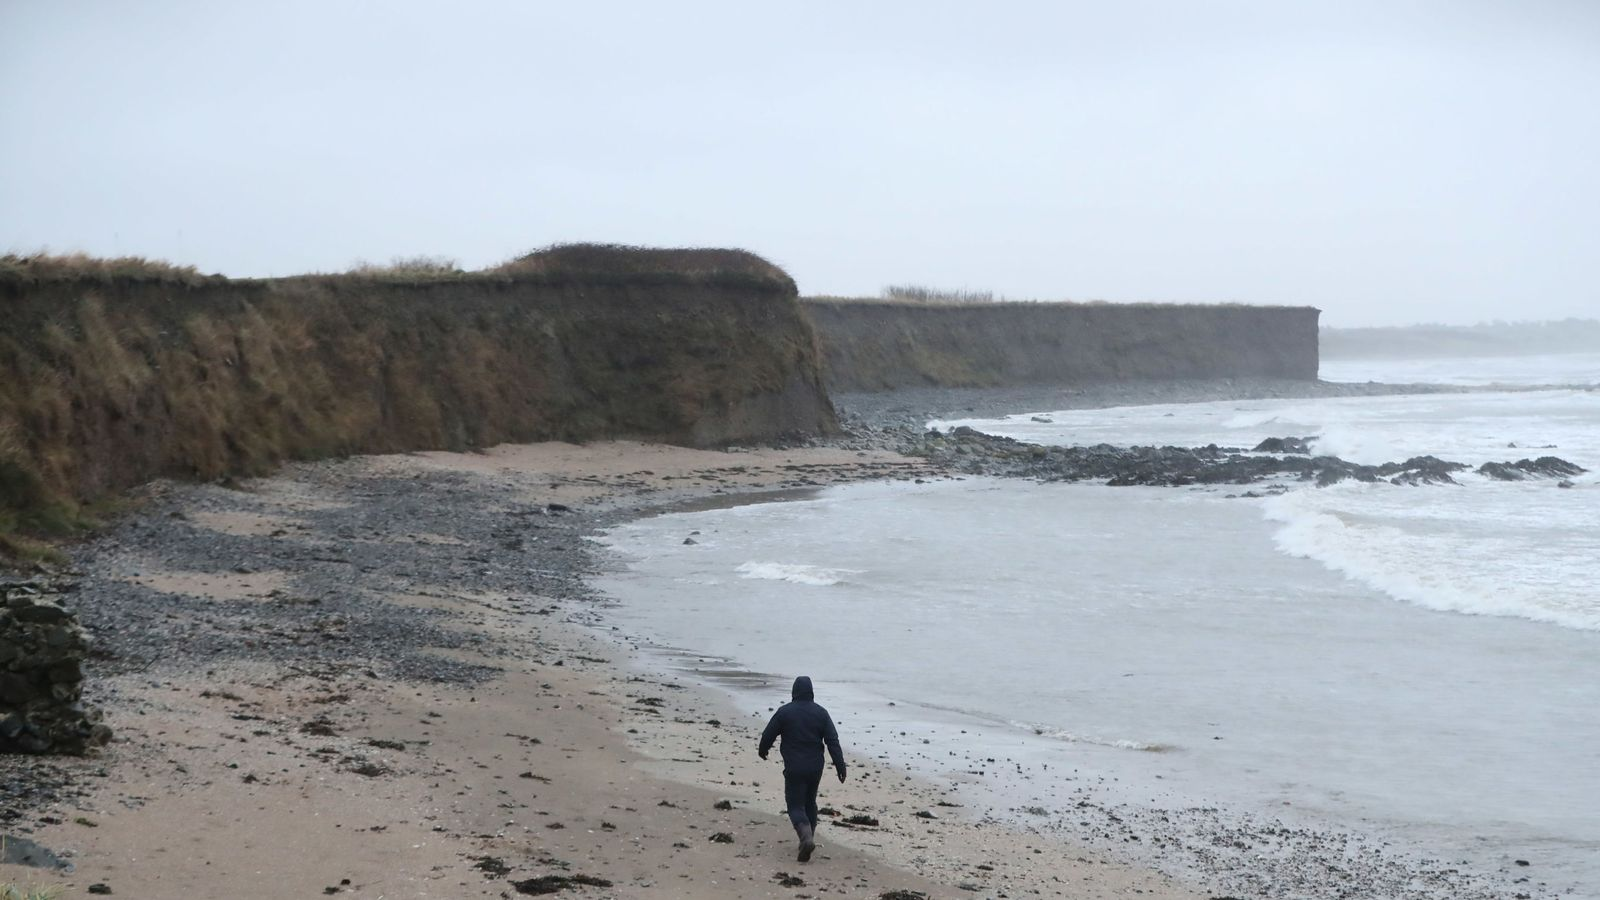 Body of newborn baby found on beach in Ireland